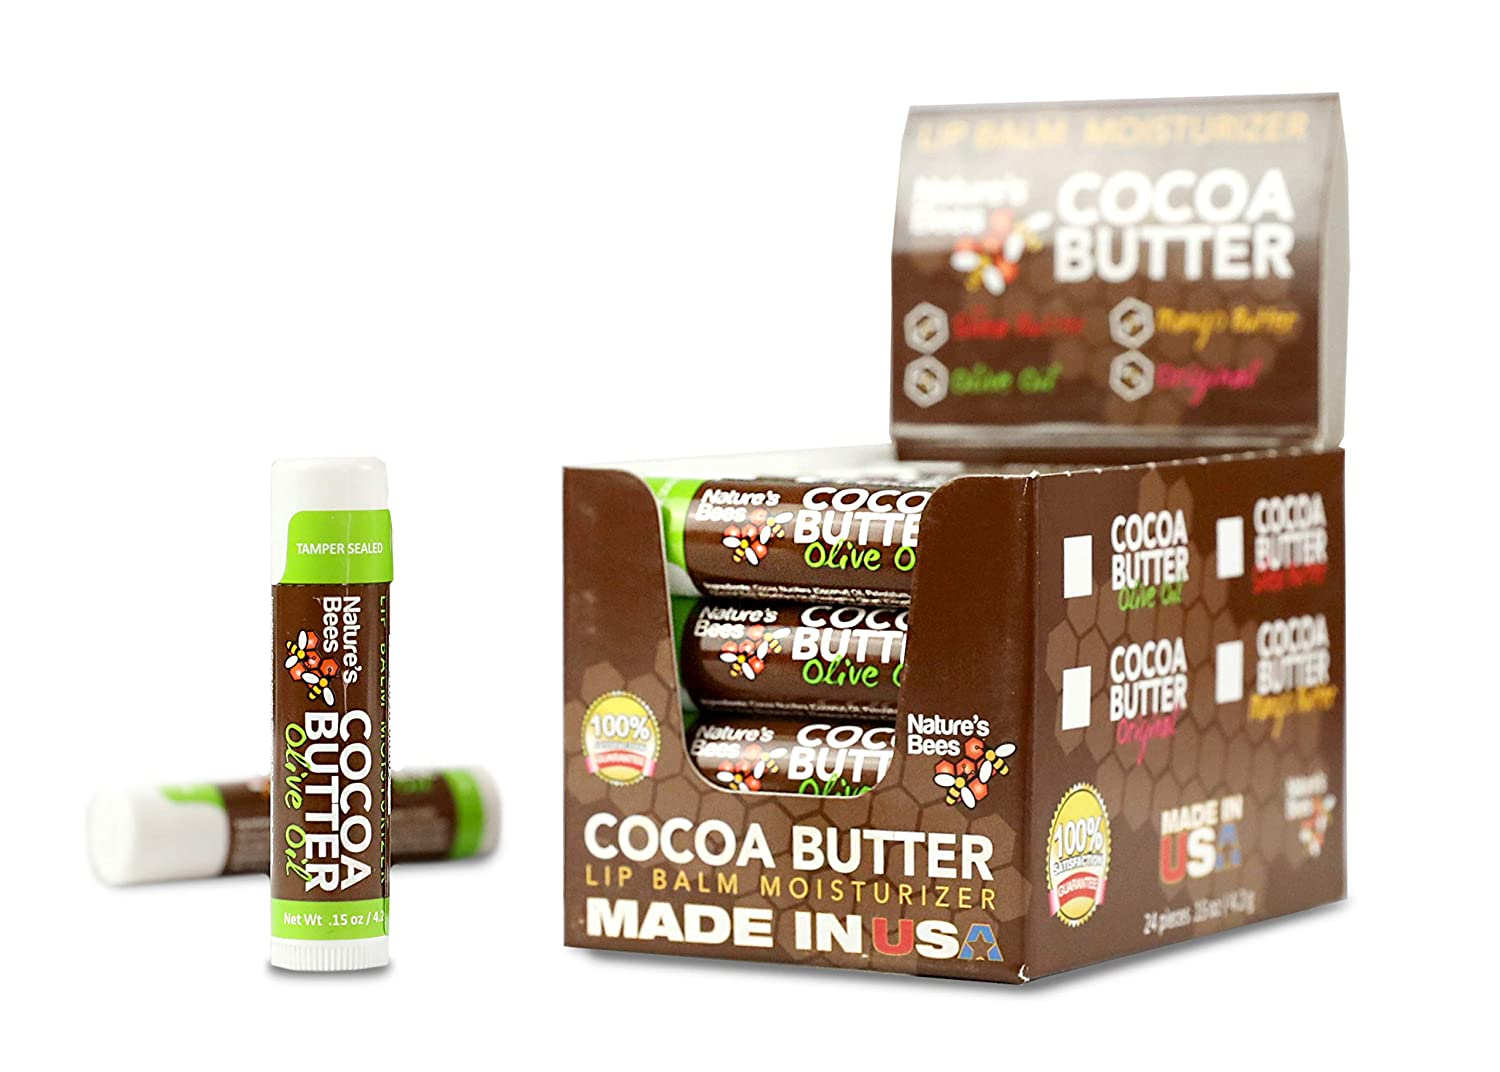 Nature's Bees, Cocoa Butter Lip Balms, Olive Oil, with Shea Butter - Pack of 24